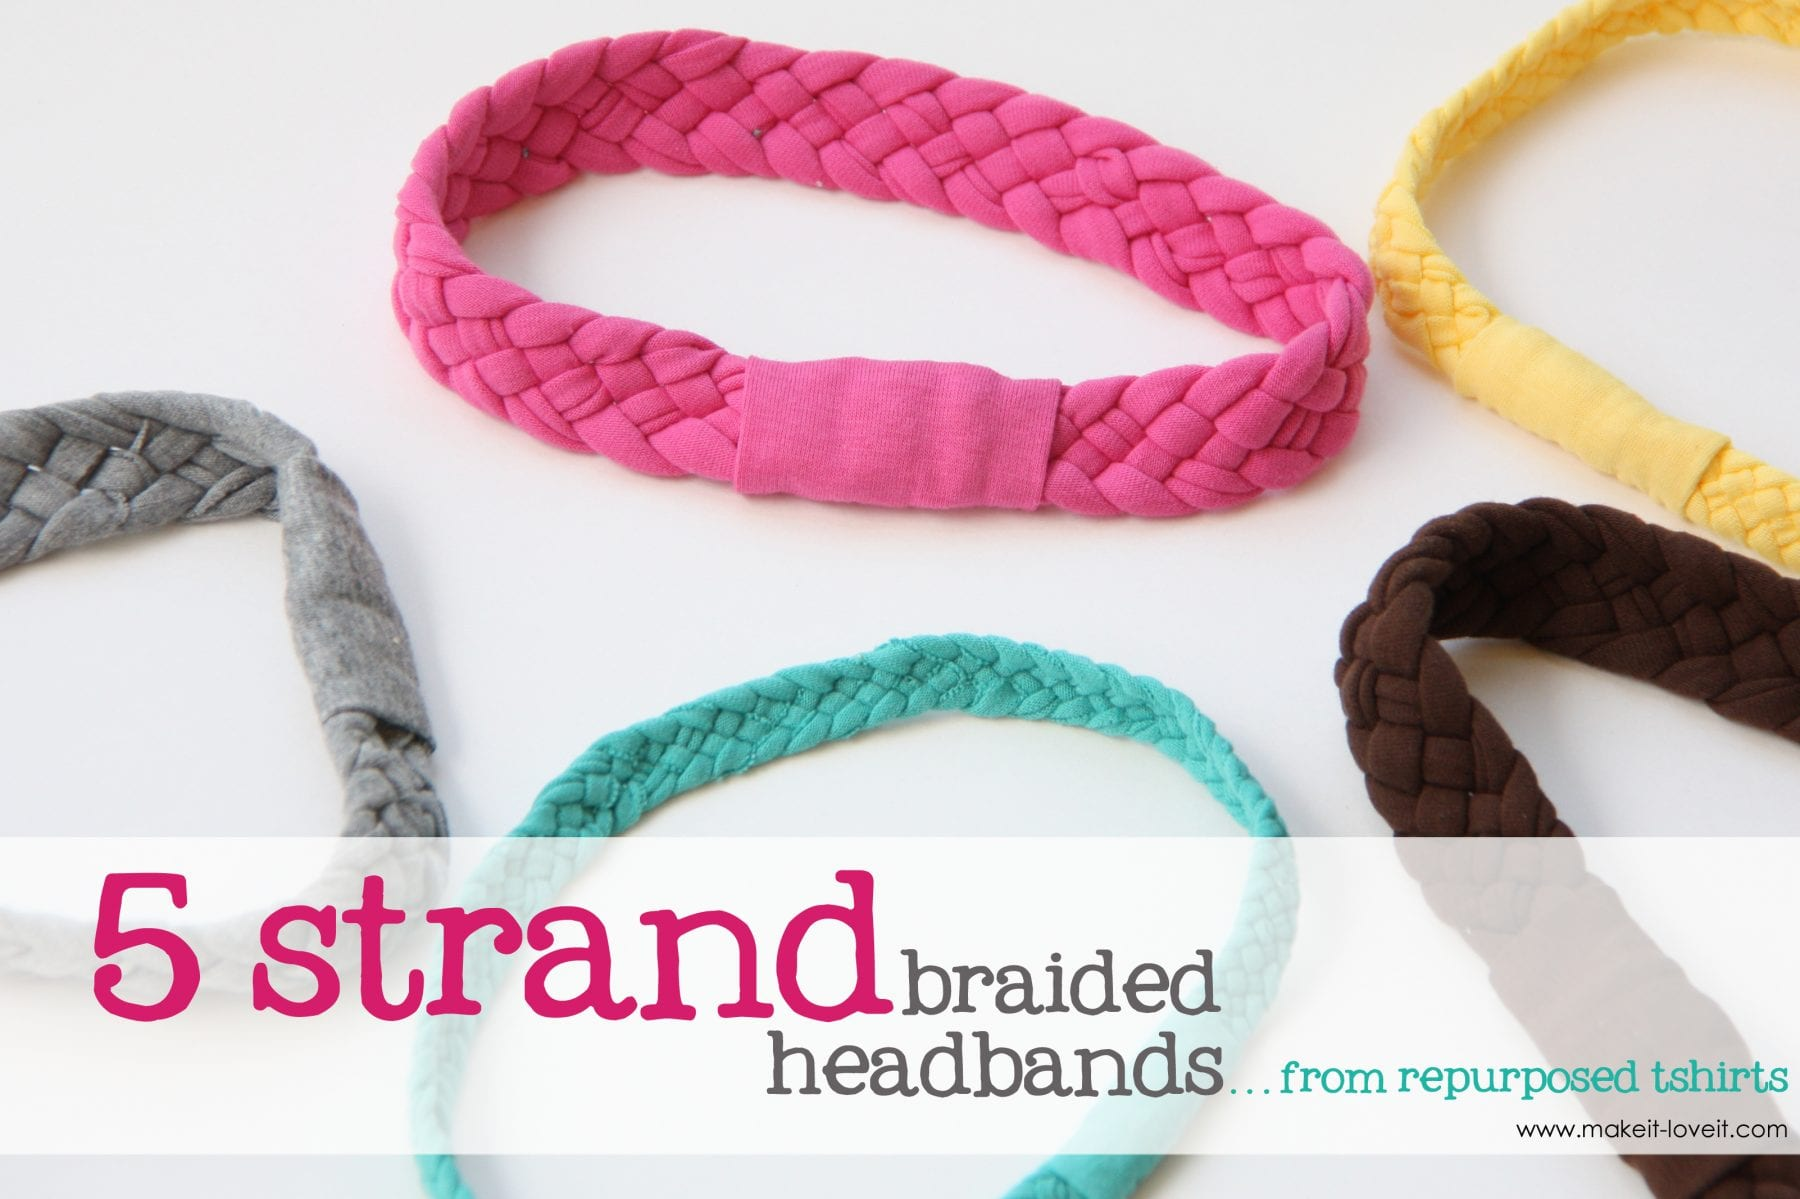 Re-purposing: Tshirts into 5-strand-braided-headbands